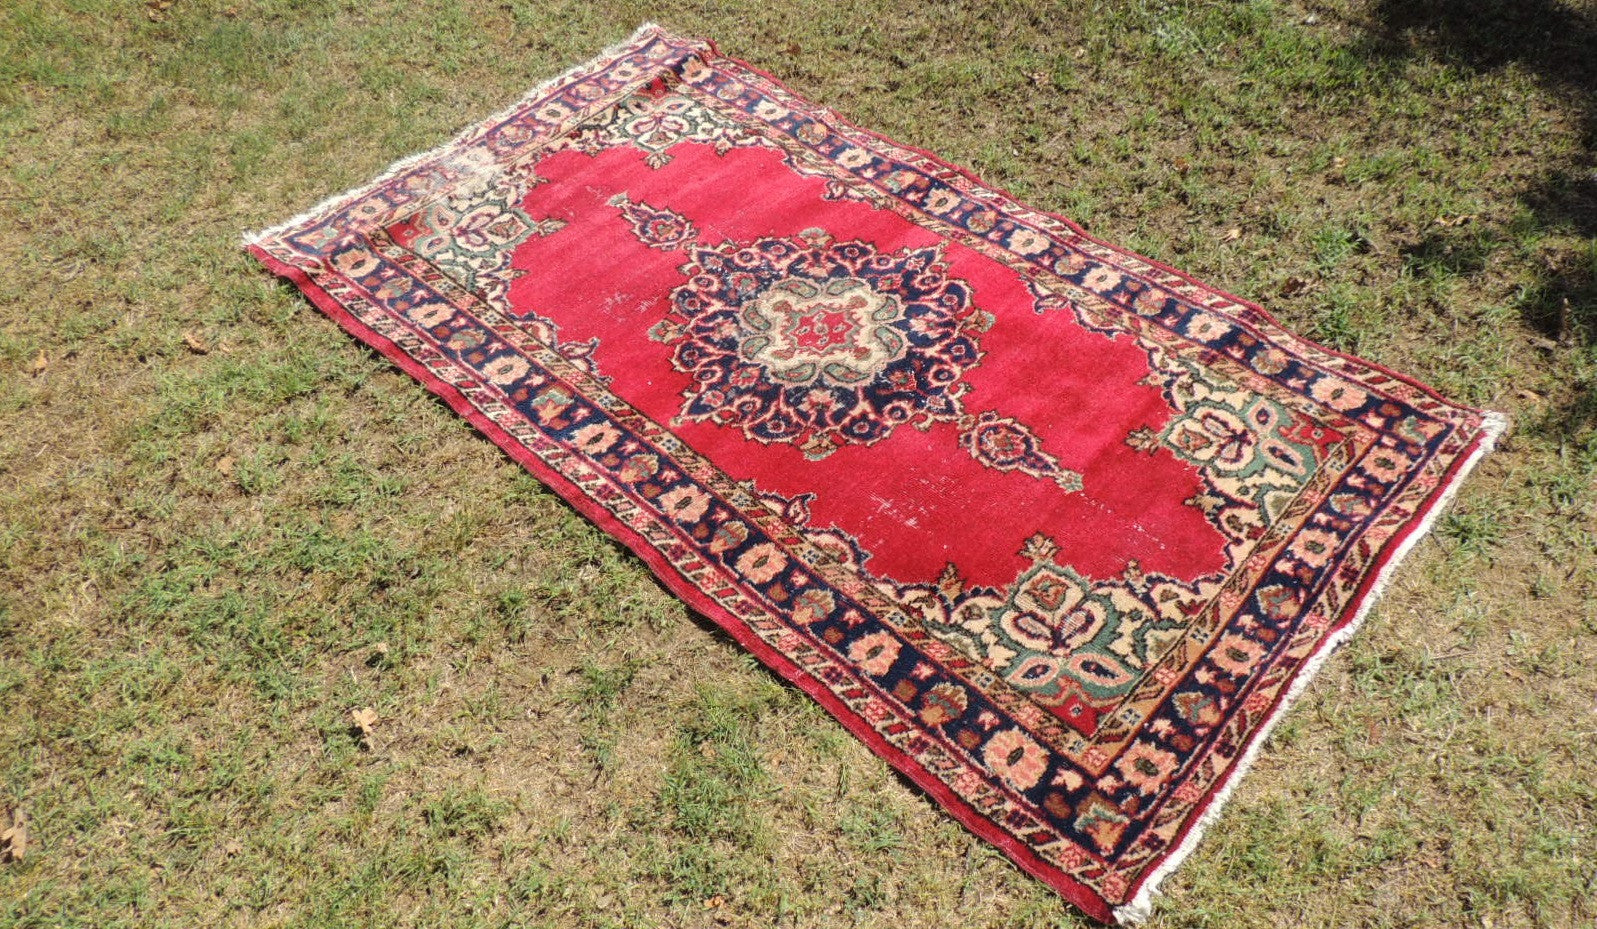 Turkish Area Rug with Classy Vintage Look from Midwest Turkey